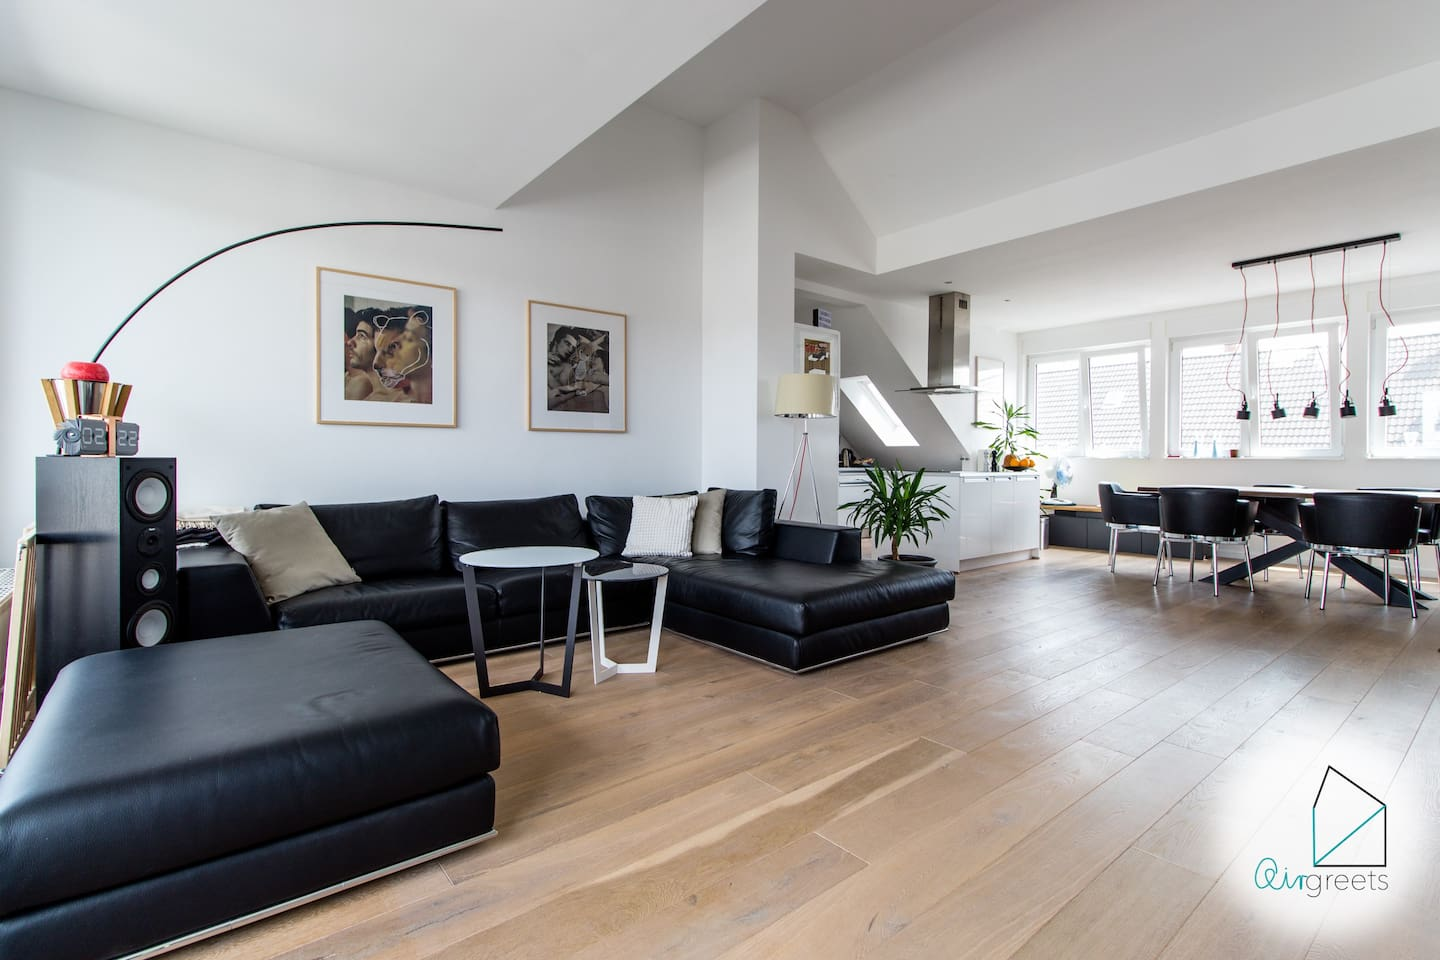 In my apartment, a wonderful, open designed kitchen-cum-living room is waiting for you.